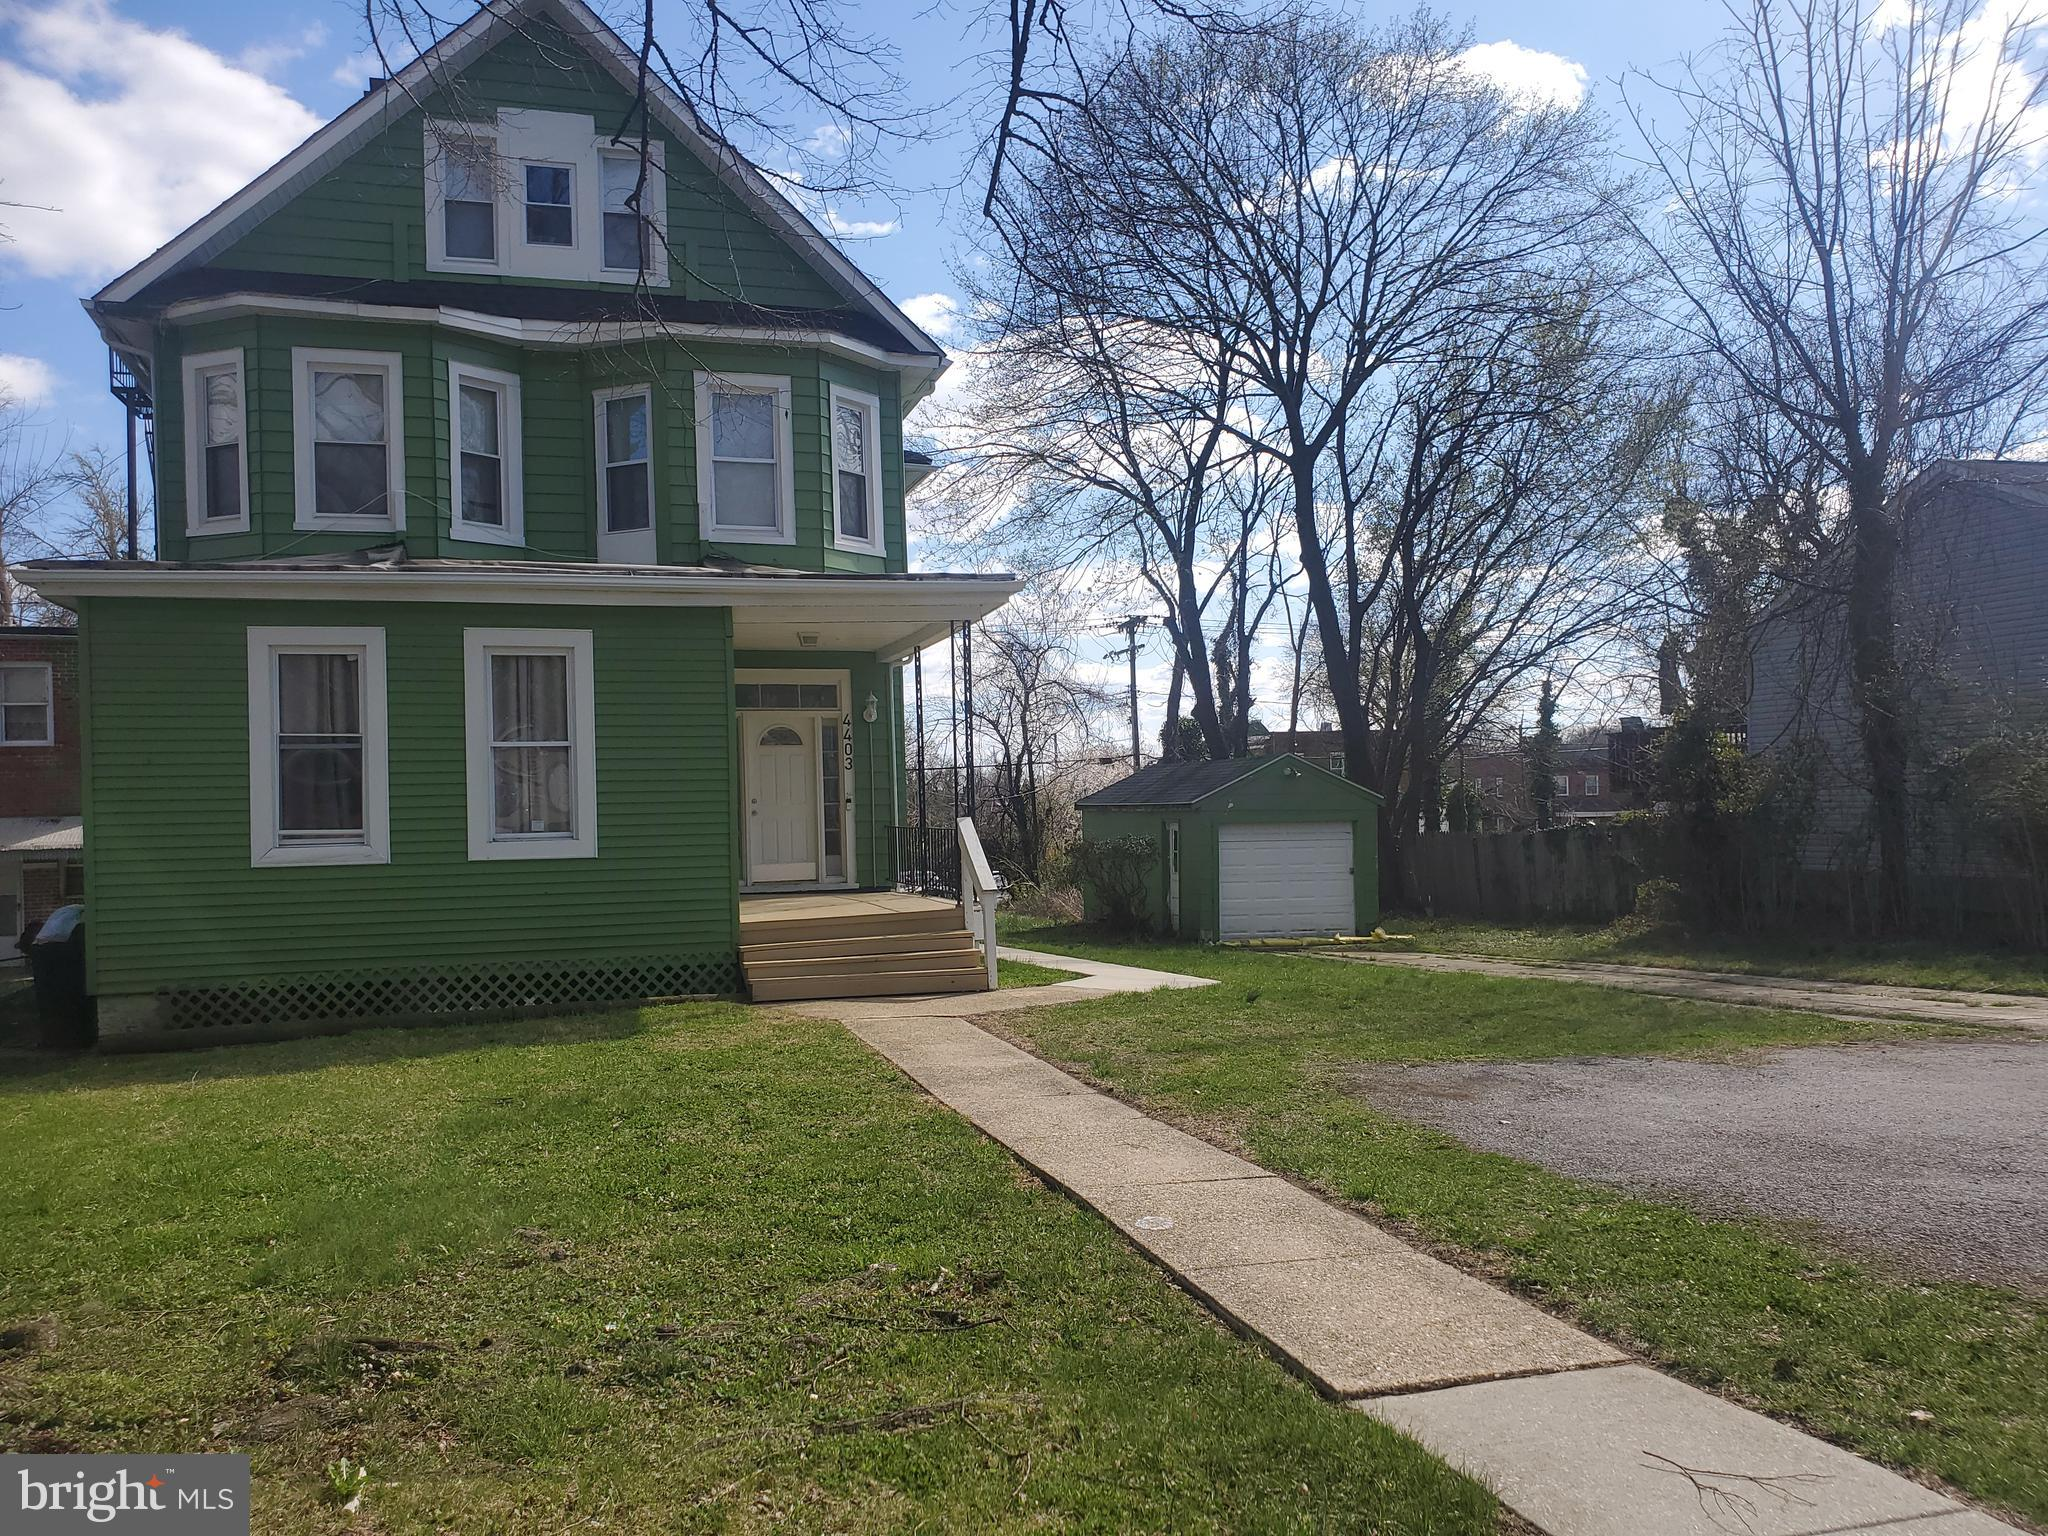 An Amazing opportunity for an investor looking to expand their portfolio! This beautiful colonial has been converted into a 3 Unit Rental property. All units occupied with long term, reliable tenants. All units are current with there payments and have active 1 year leases. Currently rented out at $799, $750, $850 and the garage at $50. It's even zoned to add more units. Current owner had been in conversation with the city to build on the land behind this property and break the sidewalk to which the city agreed. They were to allow a 6 unit building with garages along Frederick Rd. The new buyer can certainly pick that project up and make it even more valuable.  A list of improvements available. Basement is already set up for communal laundry (which could easily be converted to coin laundry) and the basement has room to add rental storage spaces as well.